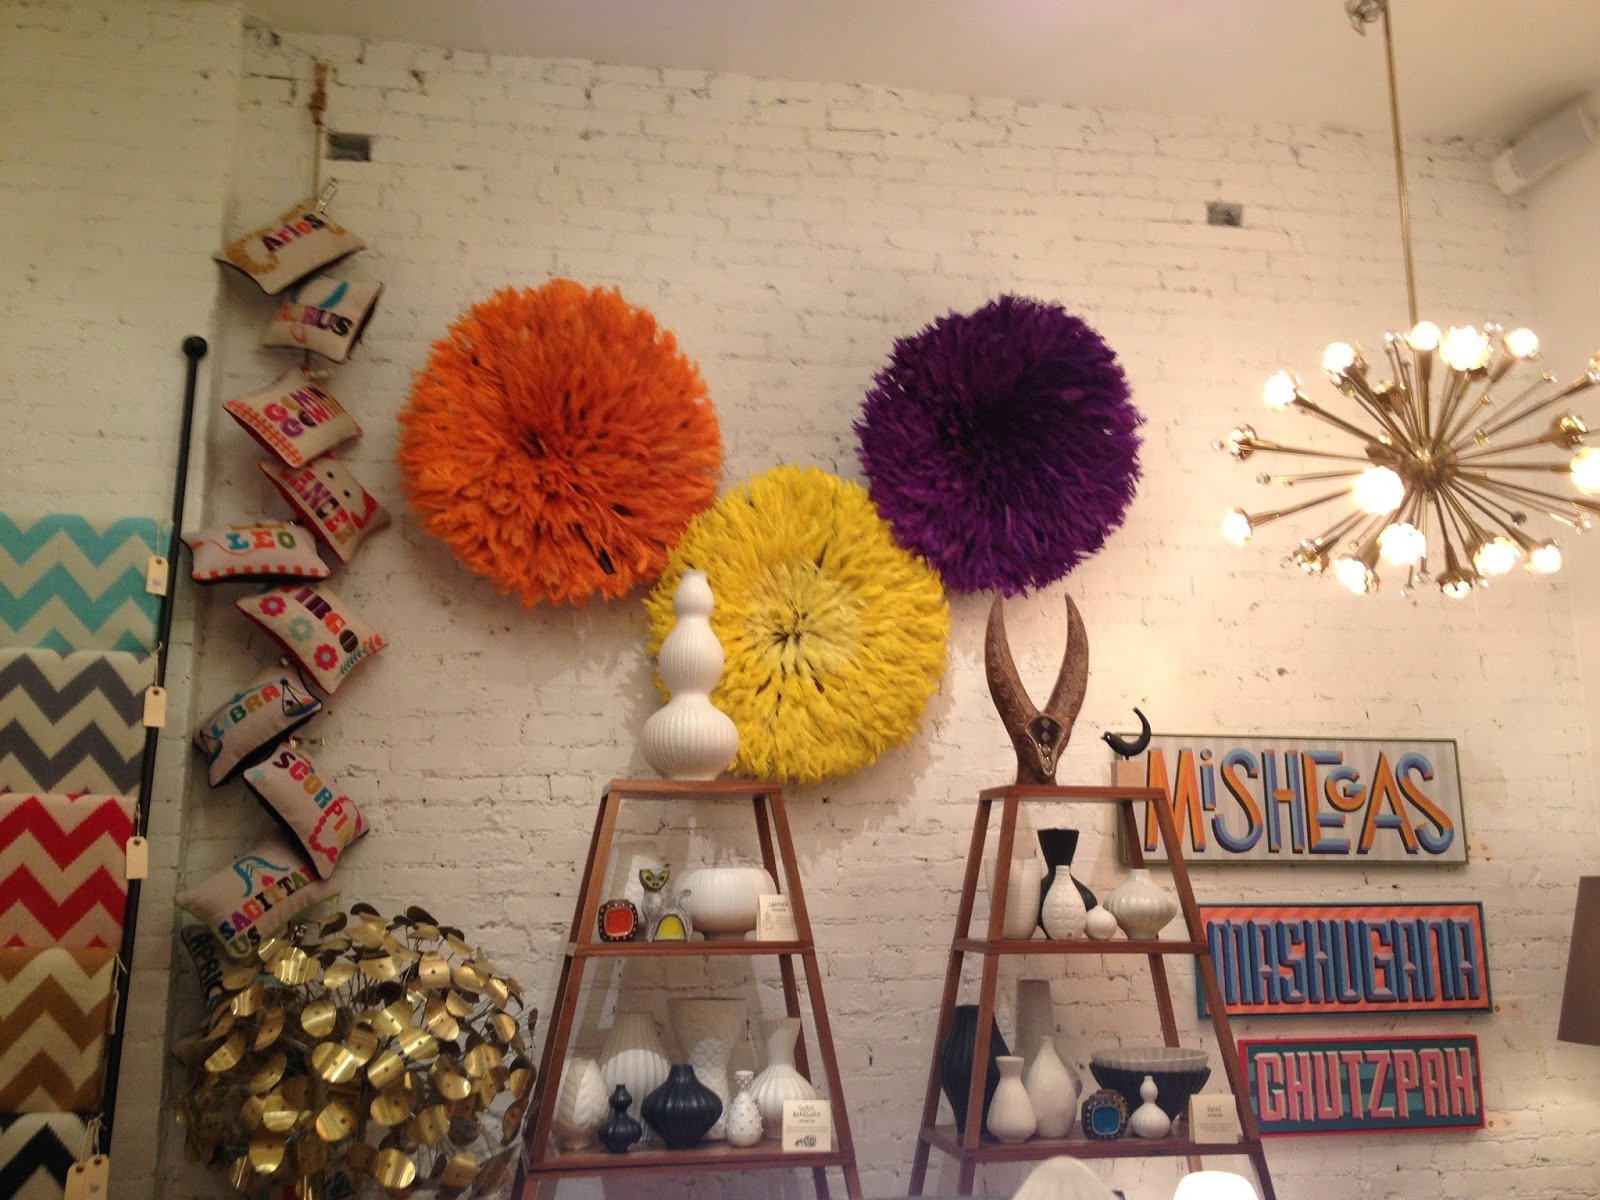 Photo by Elana Kilkenny. Taken at a Jonathan Adler store in NYC.